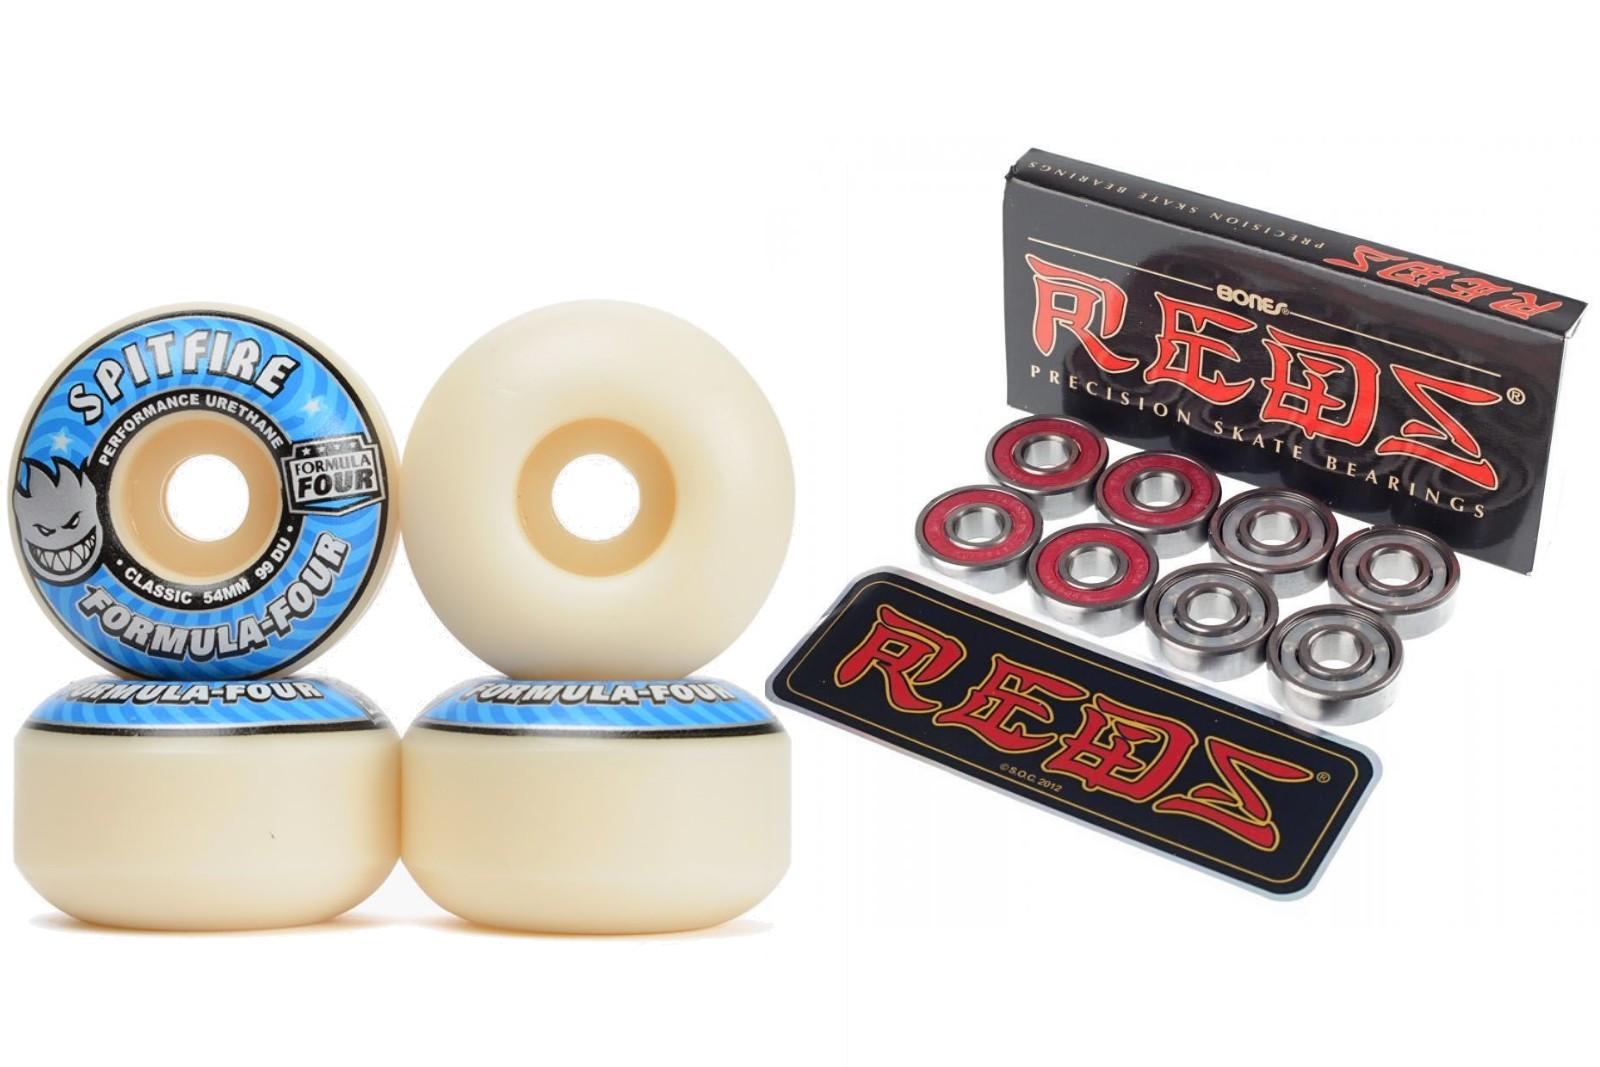 Spitfire Skateboard Wheels Blue 54mm Classic Formula 4 f4 four with Bones Reds Bearings new FREE POST